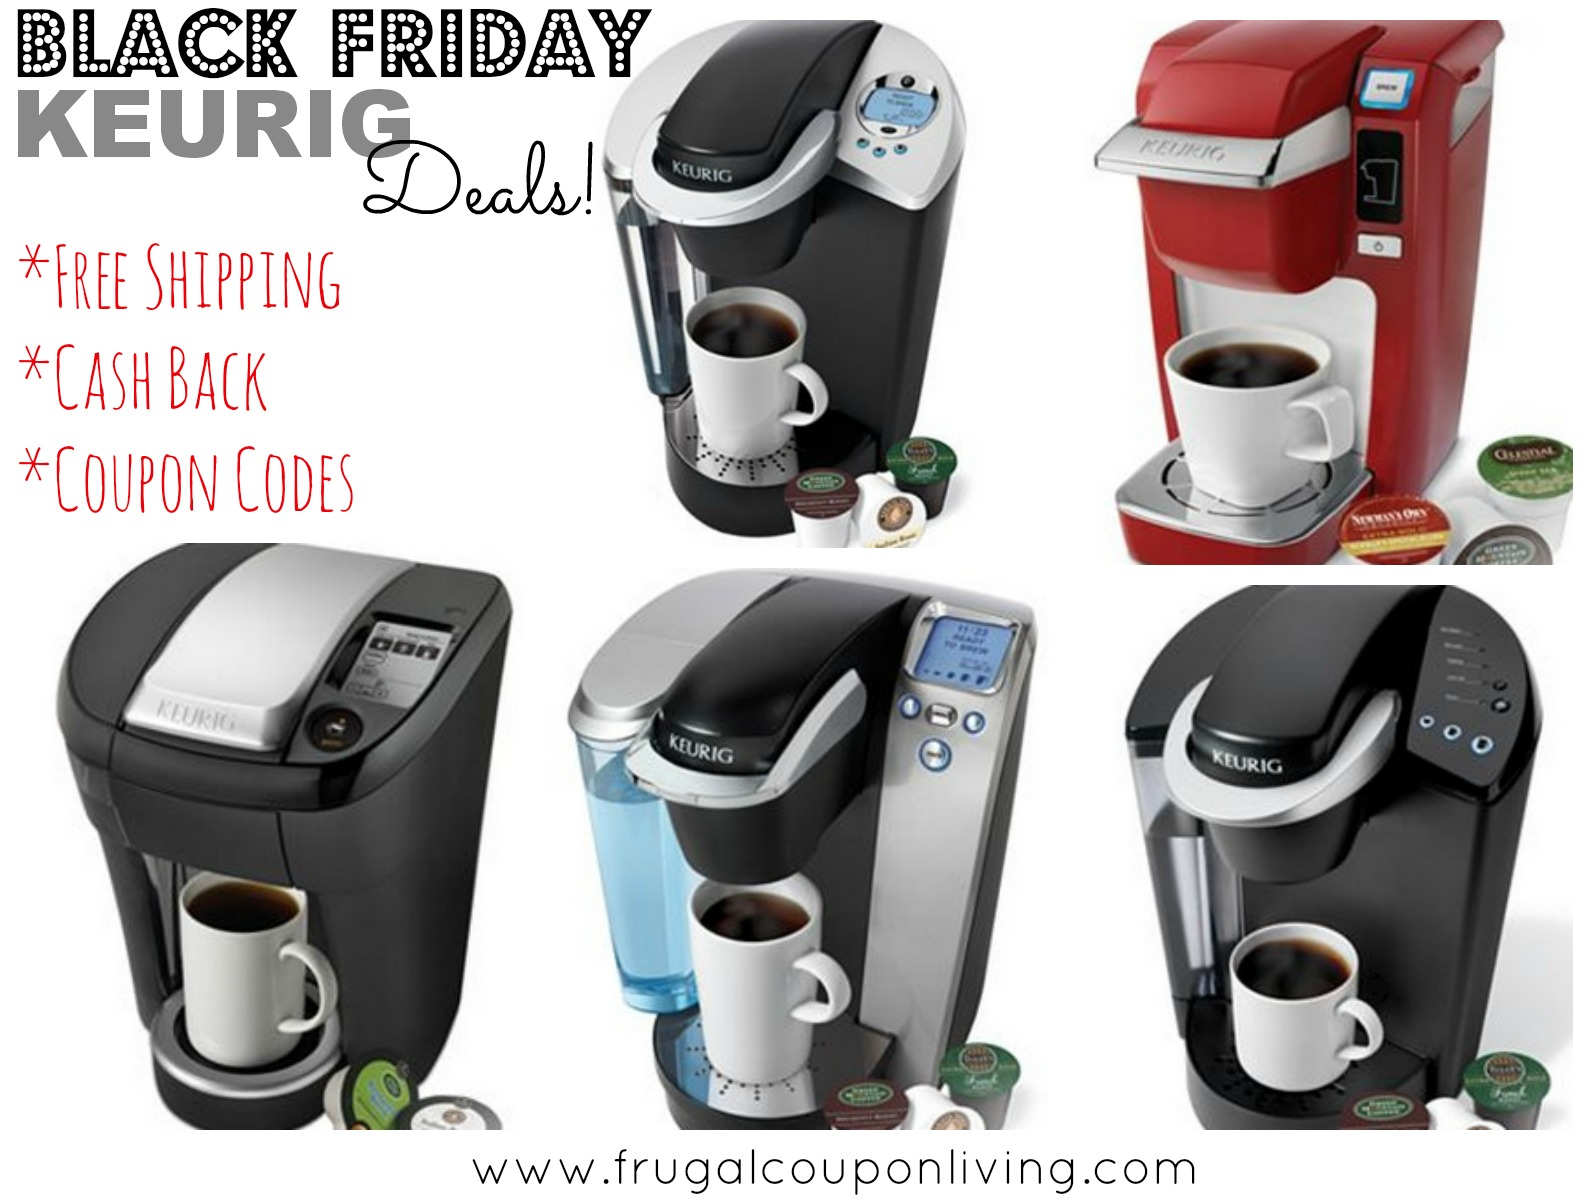 Keurig Coffee Maker Deals Cyber Monday : Keurig Black Friday Sale from USD 69.99 - Cash Back and Coupon Code